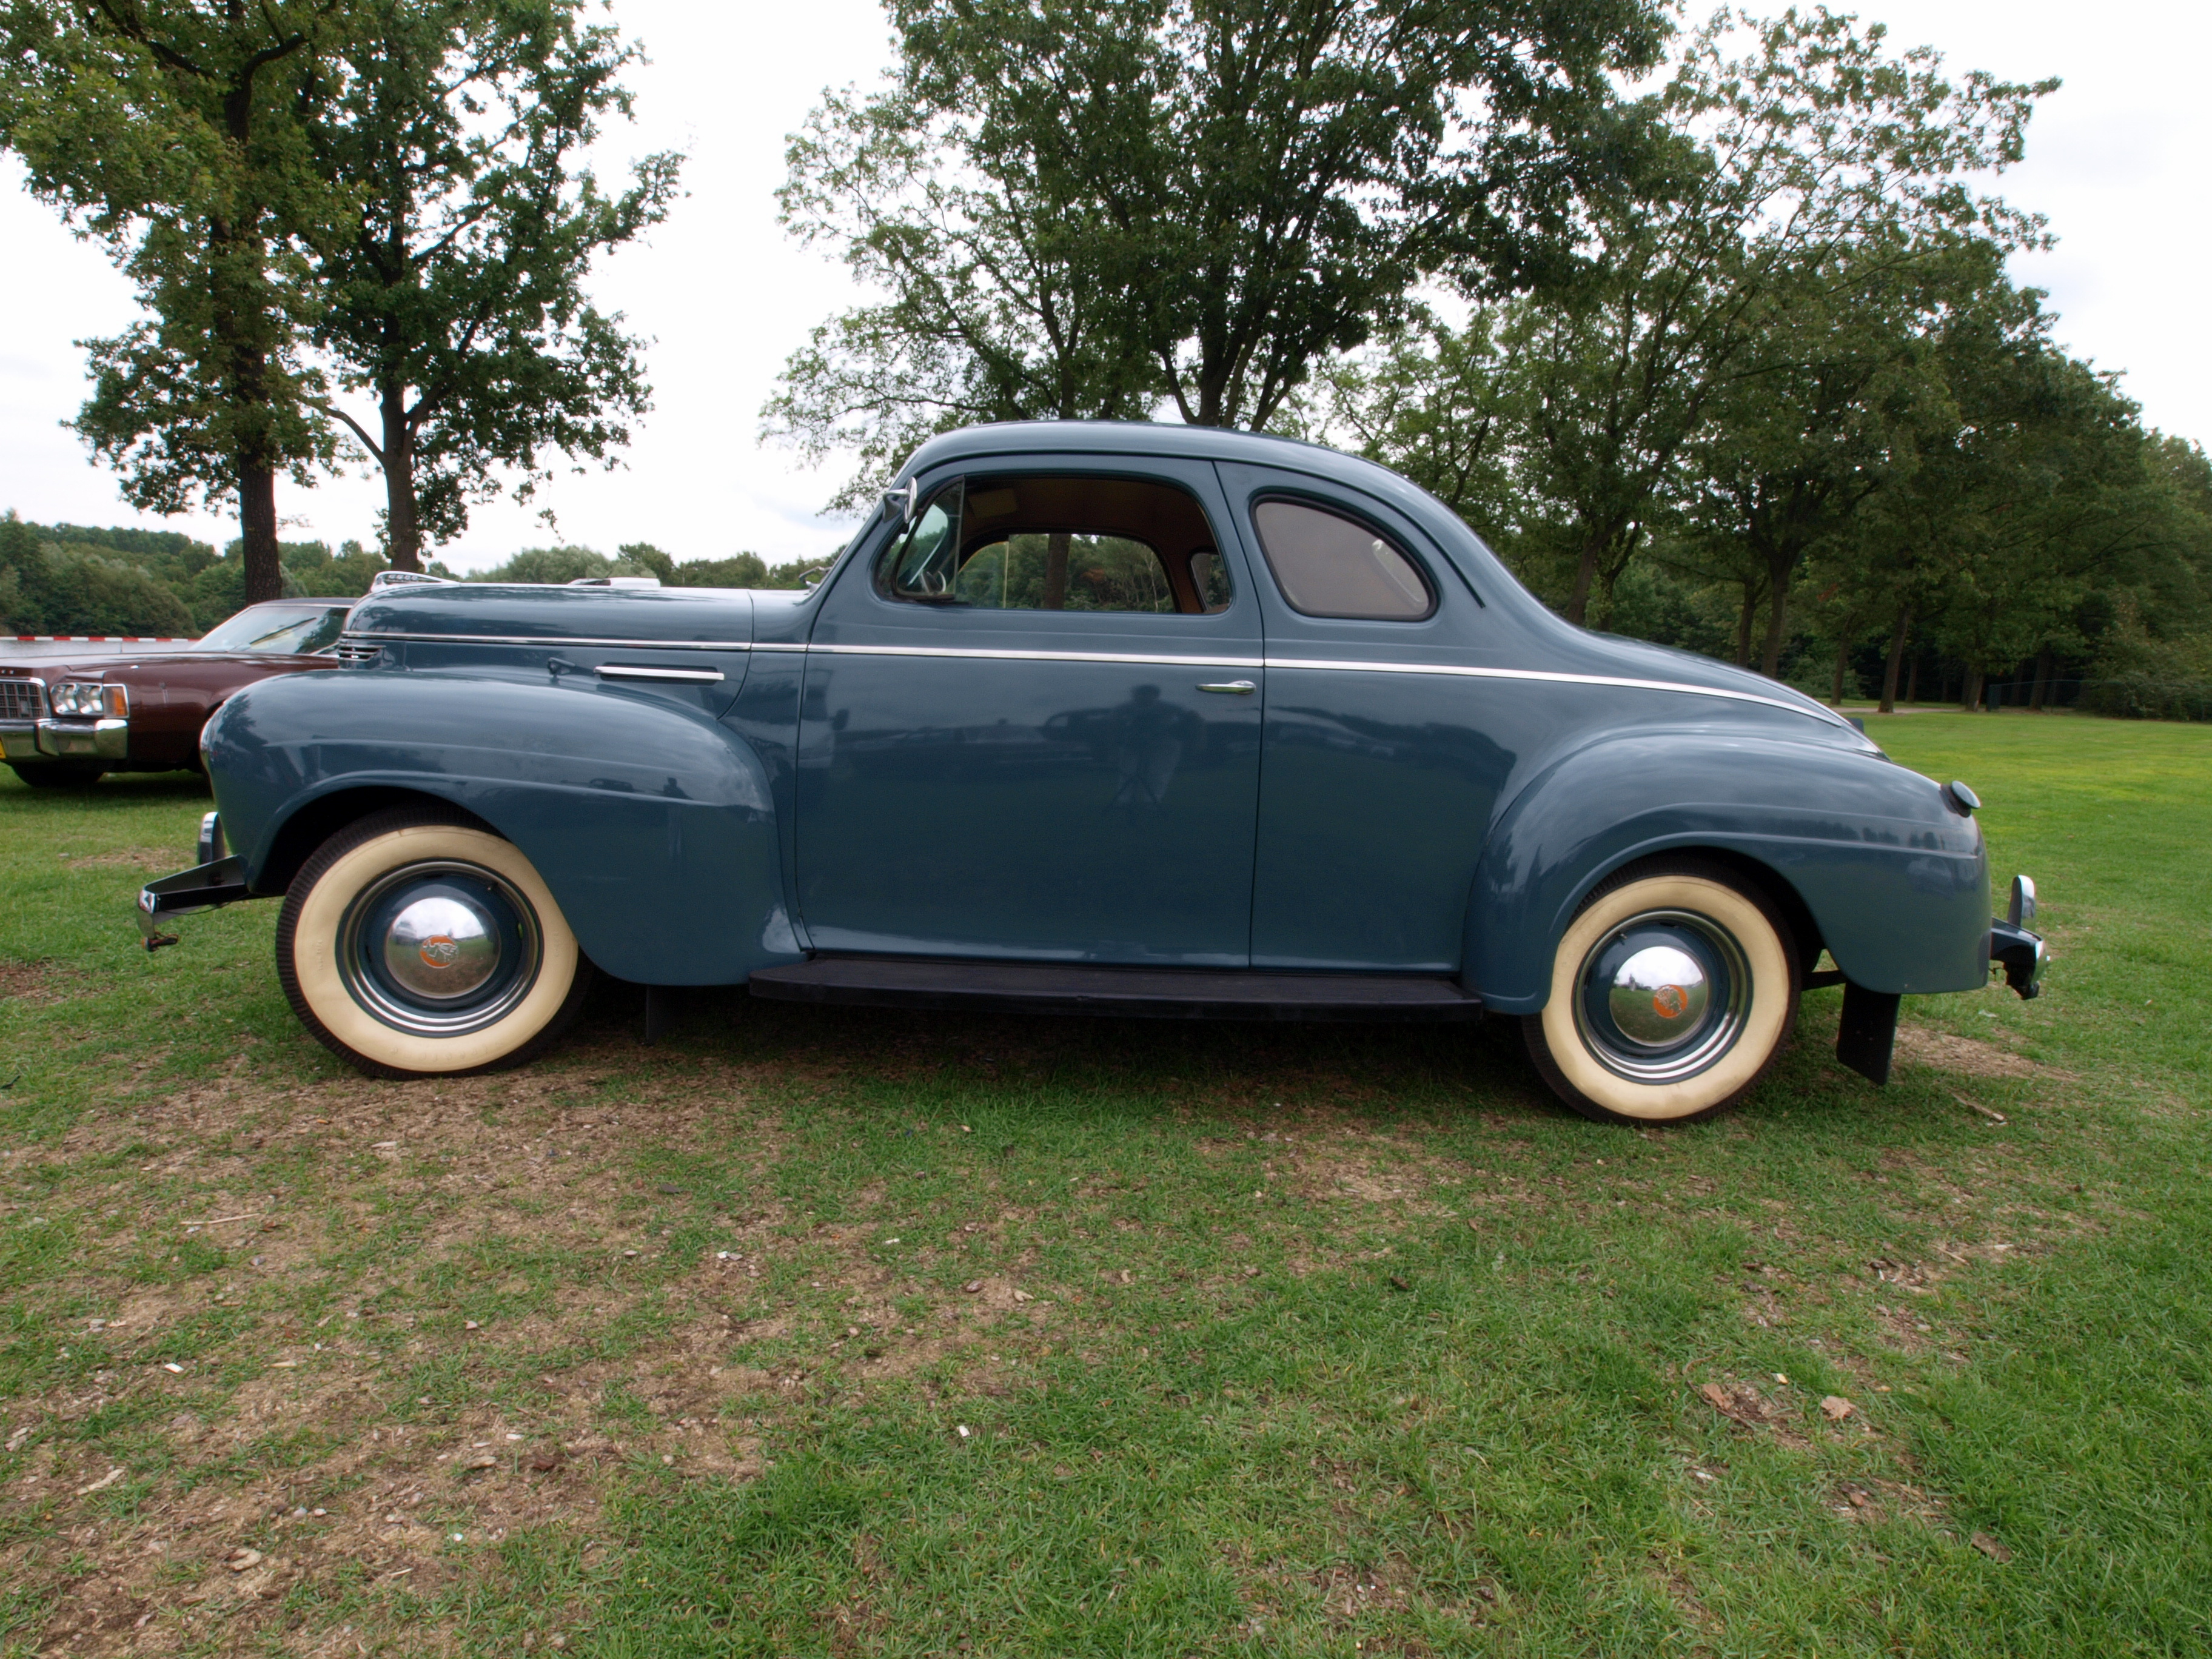 1941 Plymouth Coupe For Salerich With Patina Ford Super Pro Street File D1 P10 Dutch Licence Registration Dl